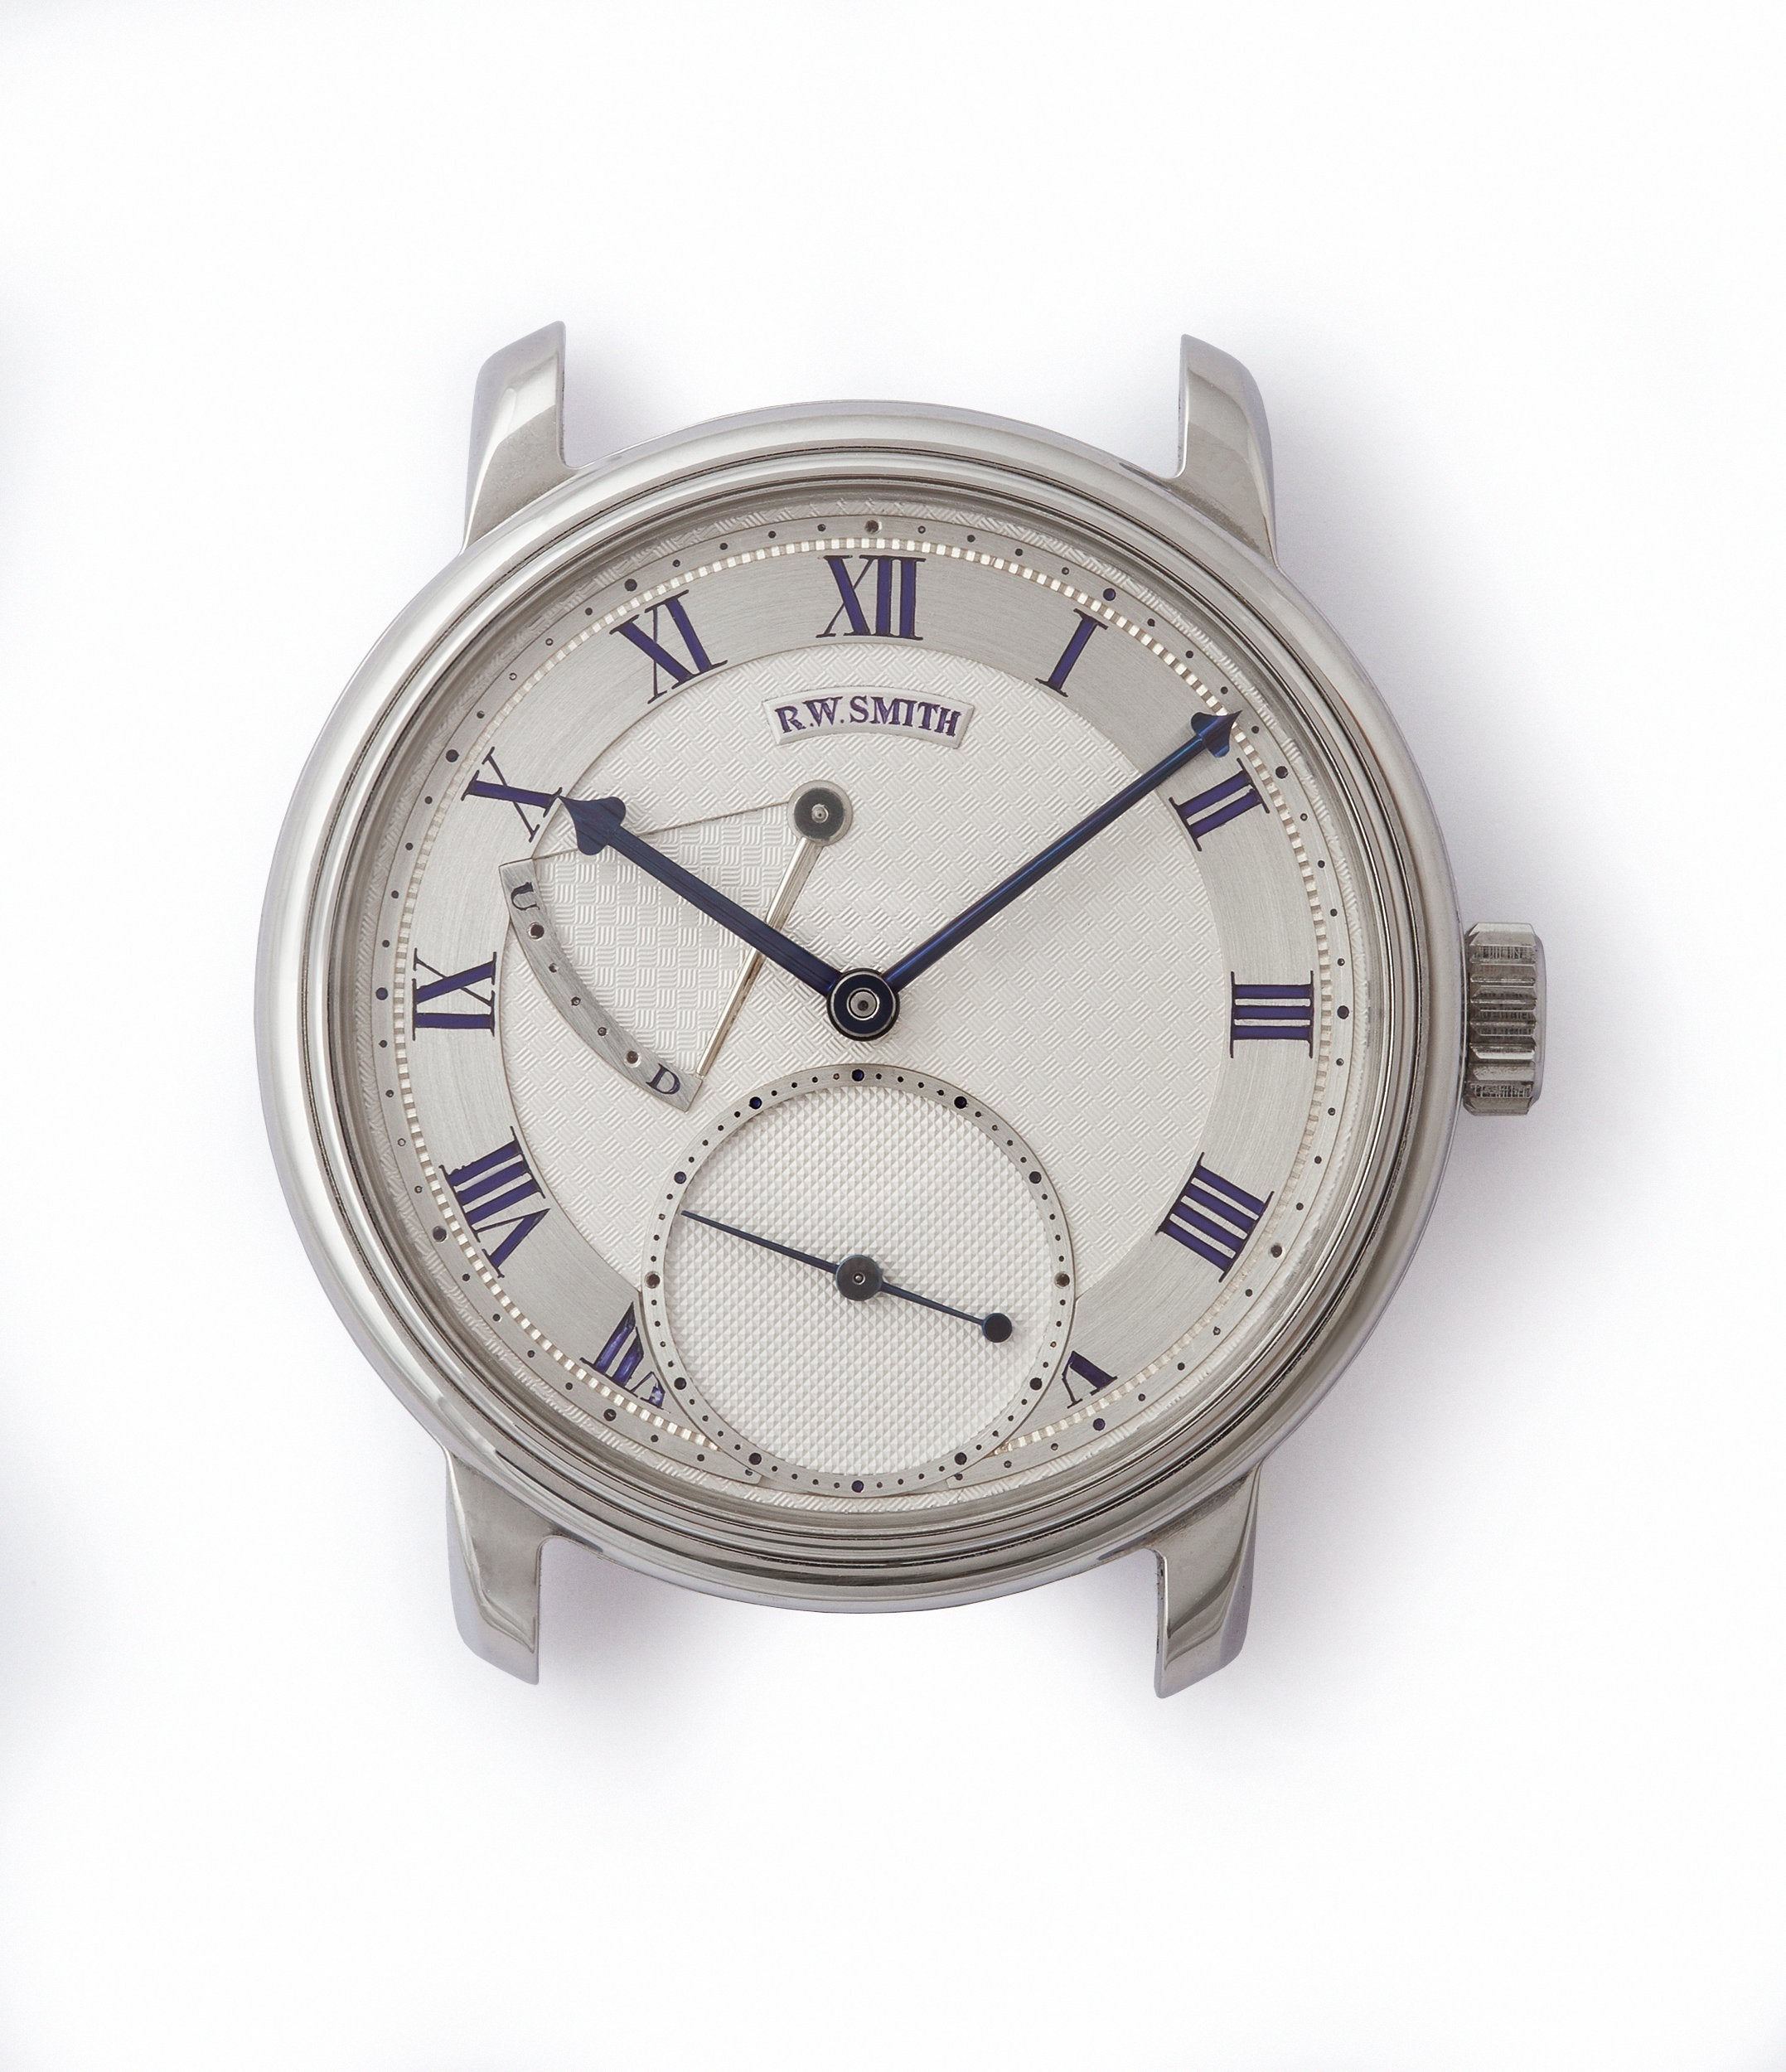 Roger W. Smith Series 2 in stainless steel for A Collected Man London